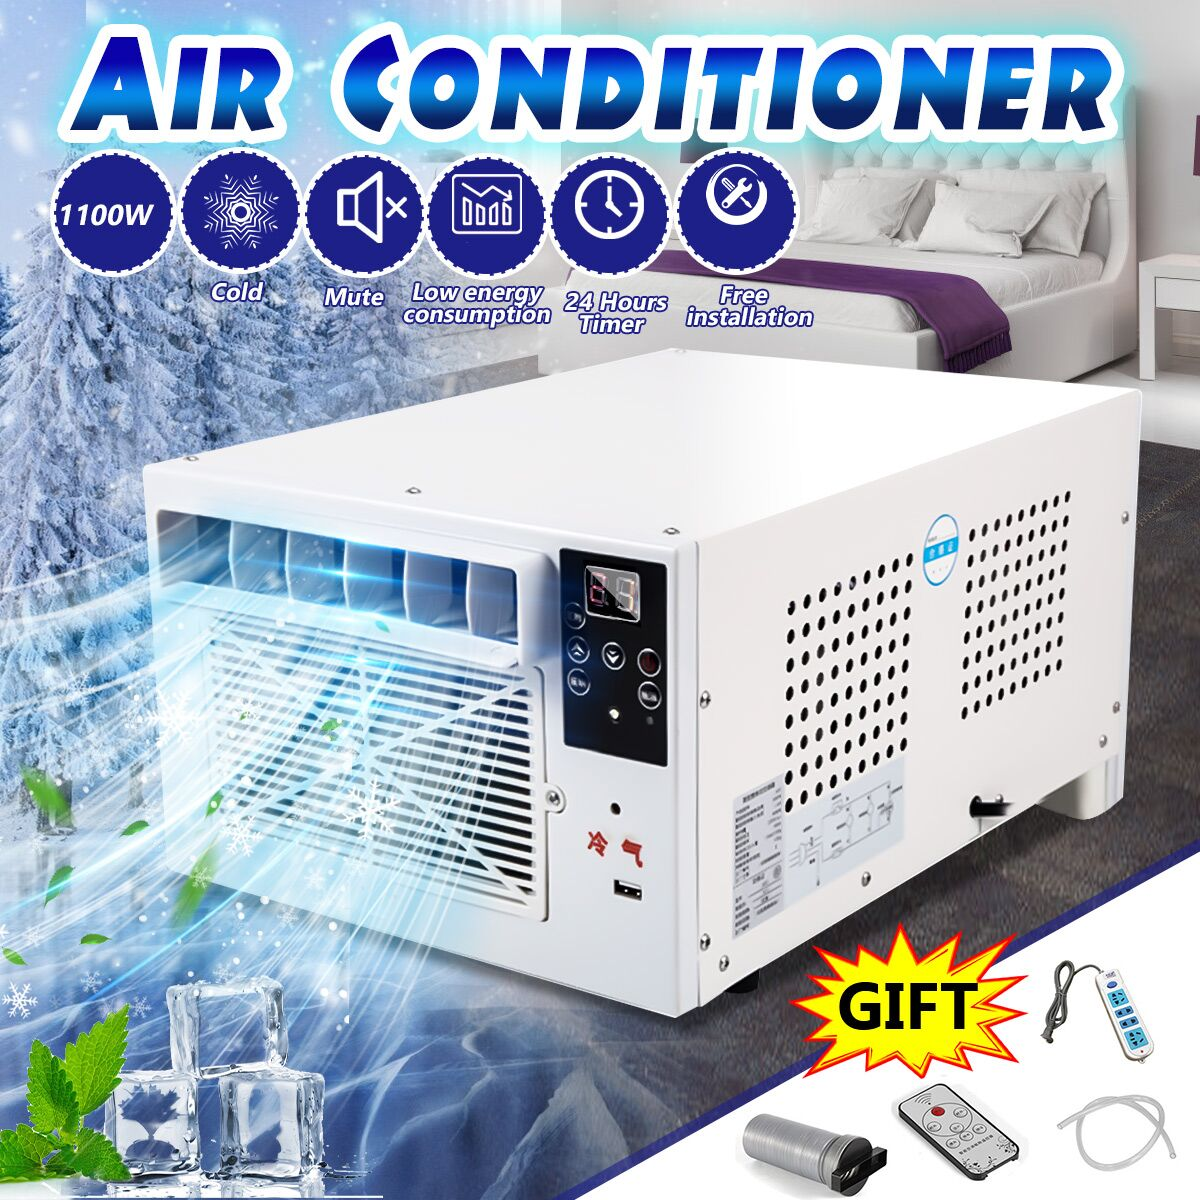 1100W Mini Portable Cooling Air Conditioner Free Installation USB Fast Charging Remote Control For Home Office Outdoor Industry